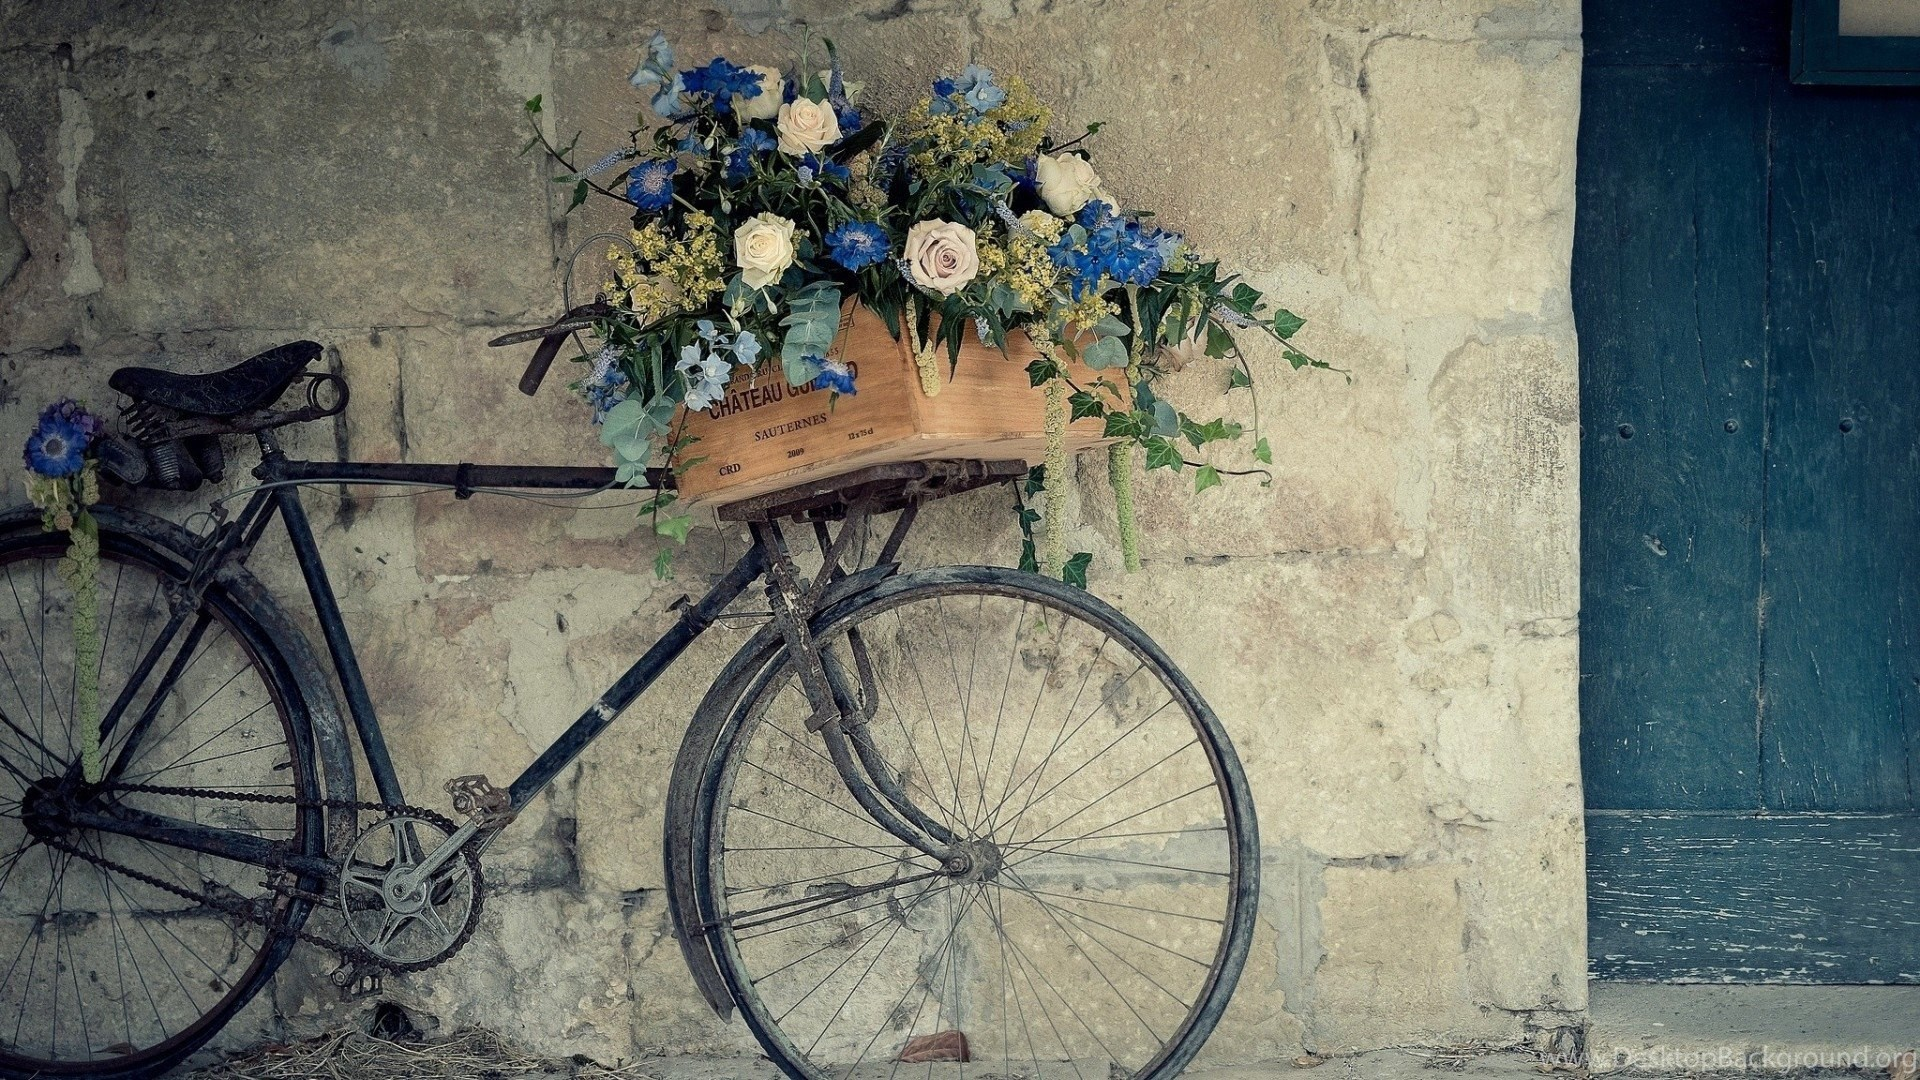 HD Vintage Bicycle Photo Wallpapers For Computer HiReWallpapers 8054